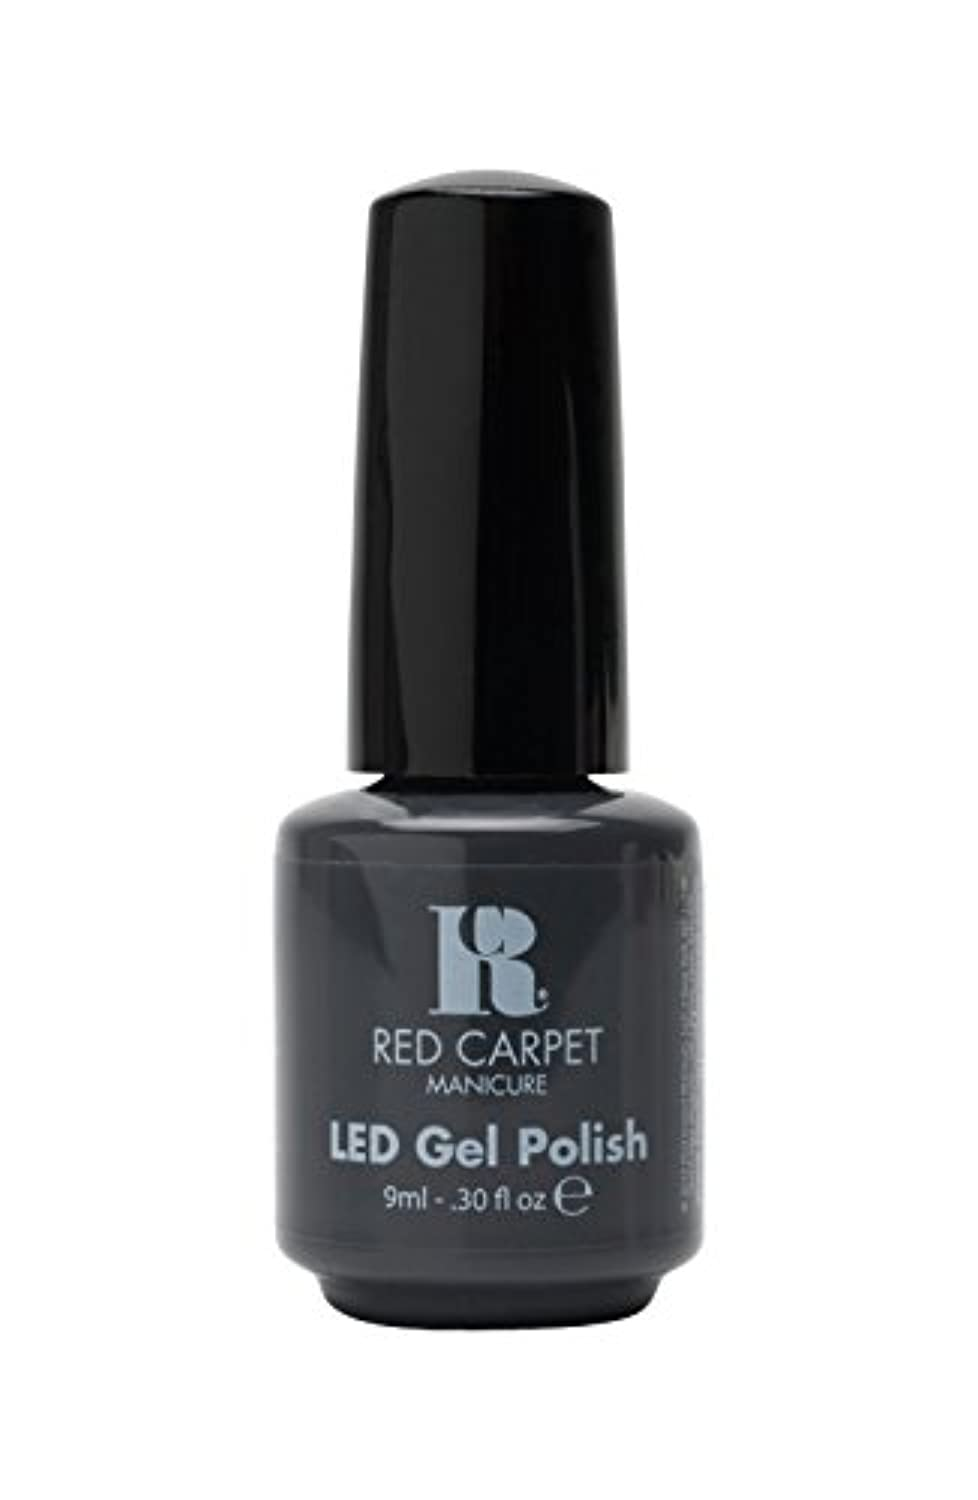 Red Carpet Manicure - LED Nail Gel Polish - My Inspiration - 0.3oz/9ml